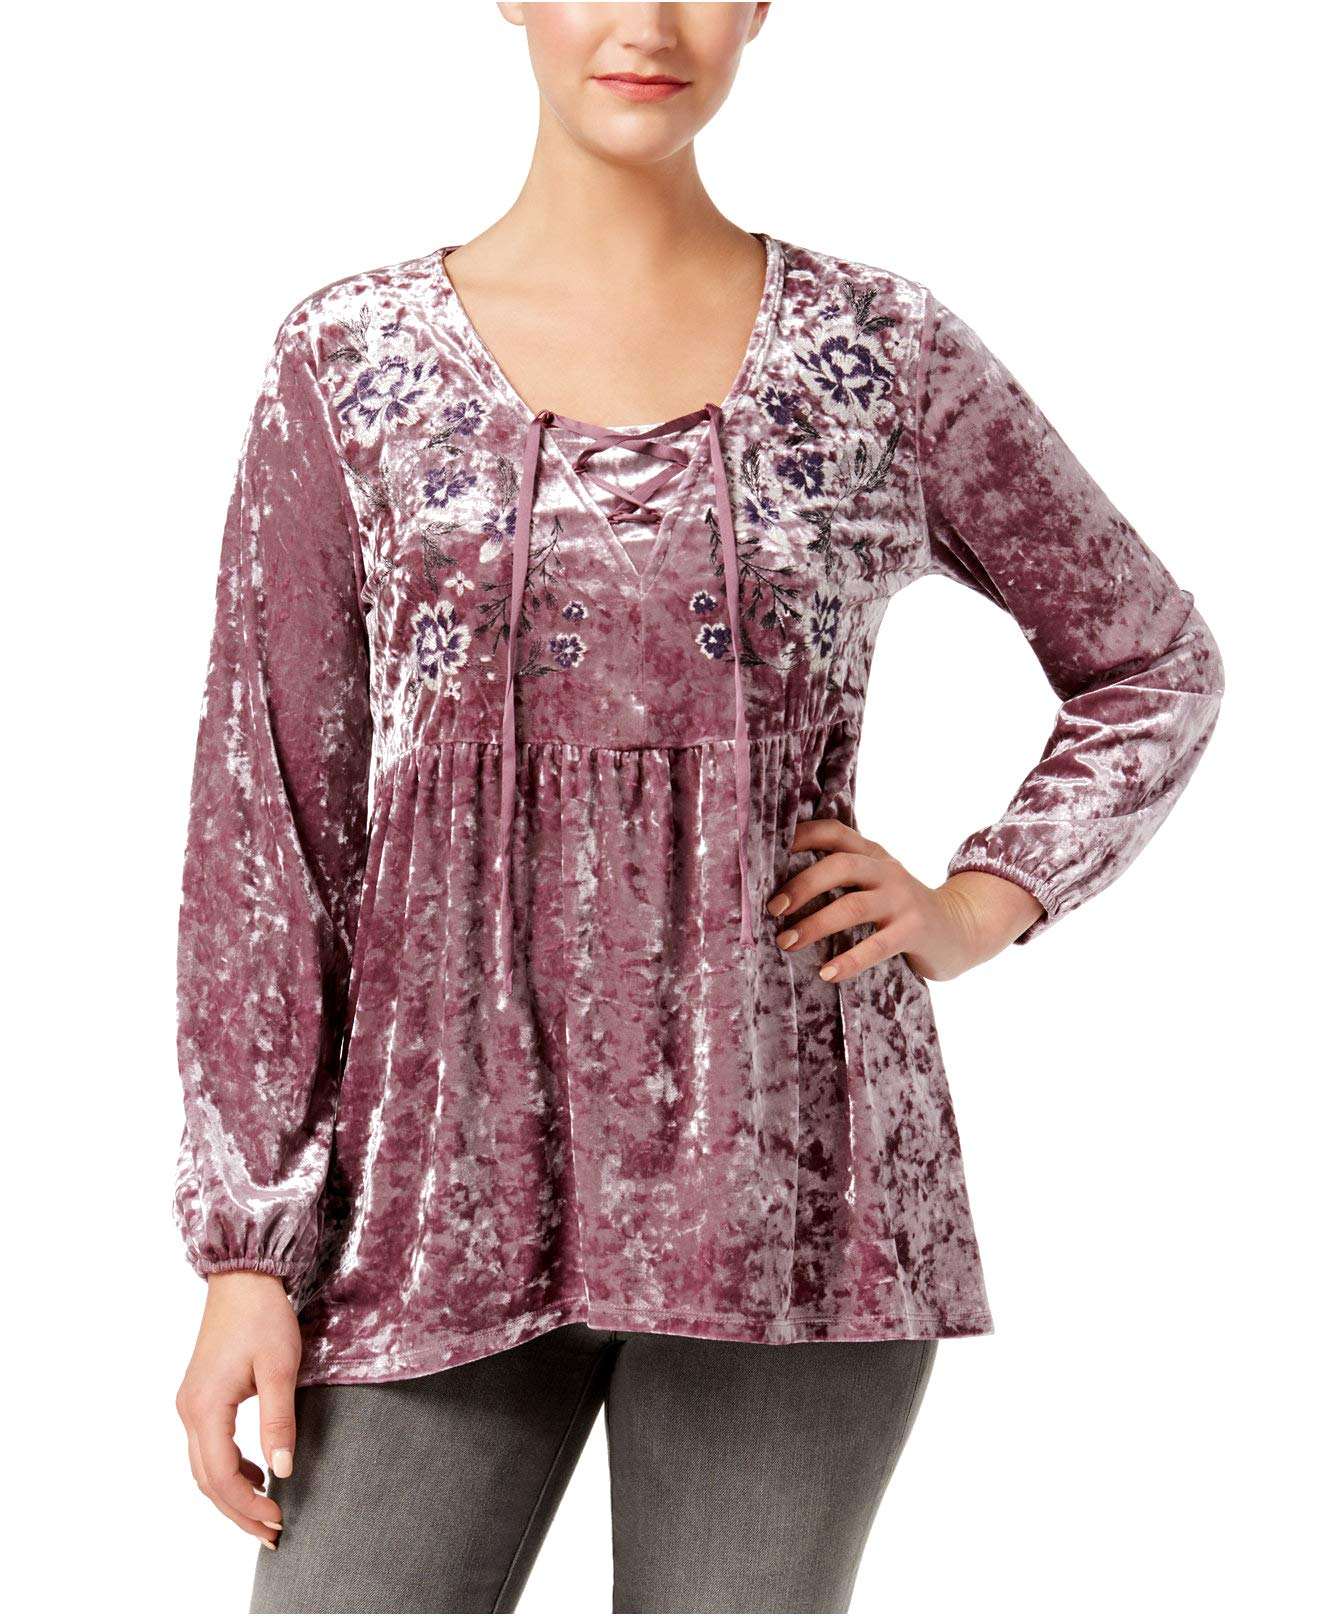 Style & Co. Women's Crushed Velvet Peasant Top (Mauve, Large)